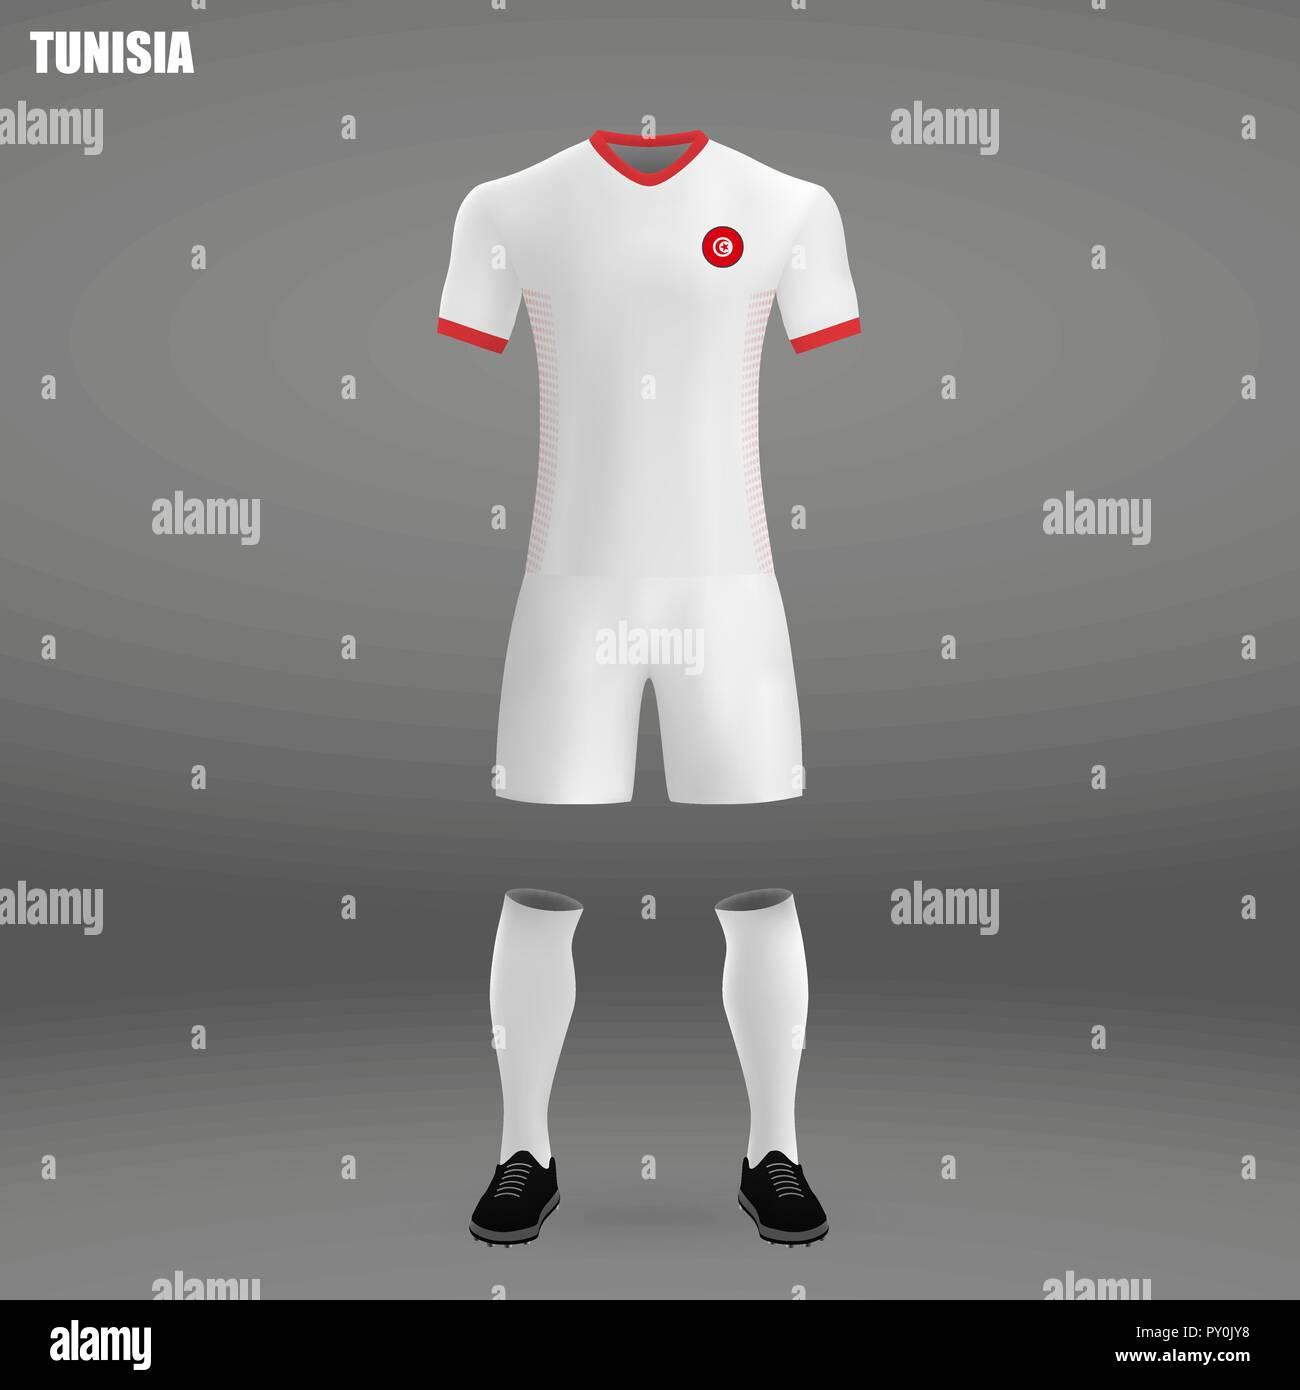 football kit of tunisia 2018 t shirt template for soccer jersey